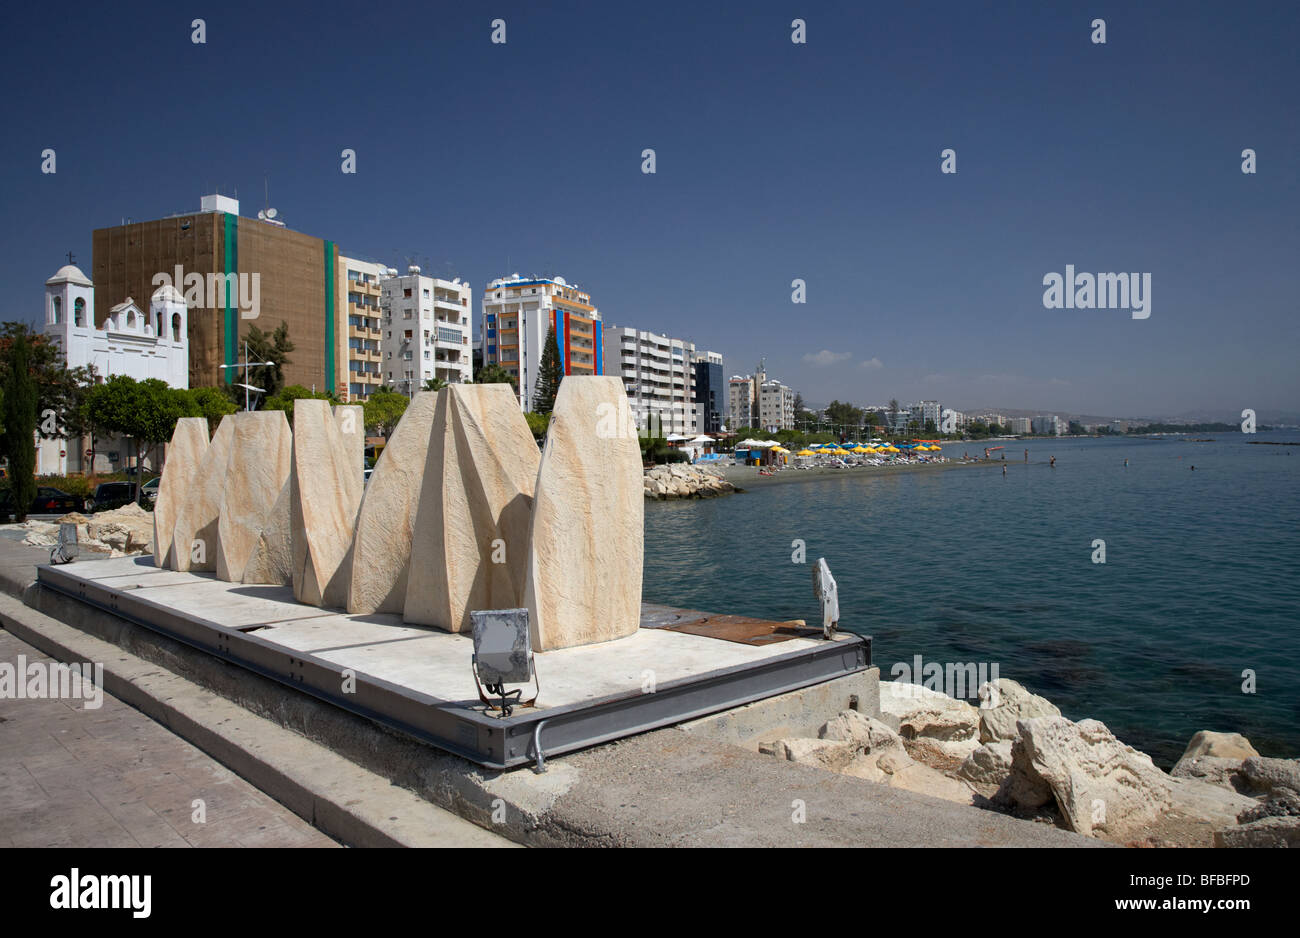 cultural wave sculpture by costas dikefalos in Limassol sculpture park in twin cities park on reclaimed land lemesos - Stock Image